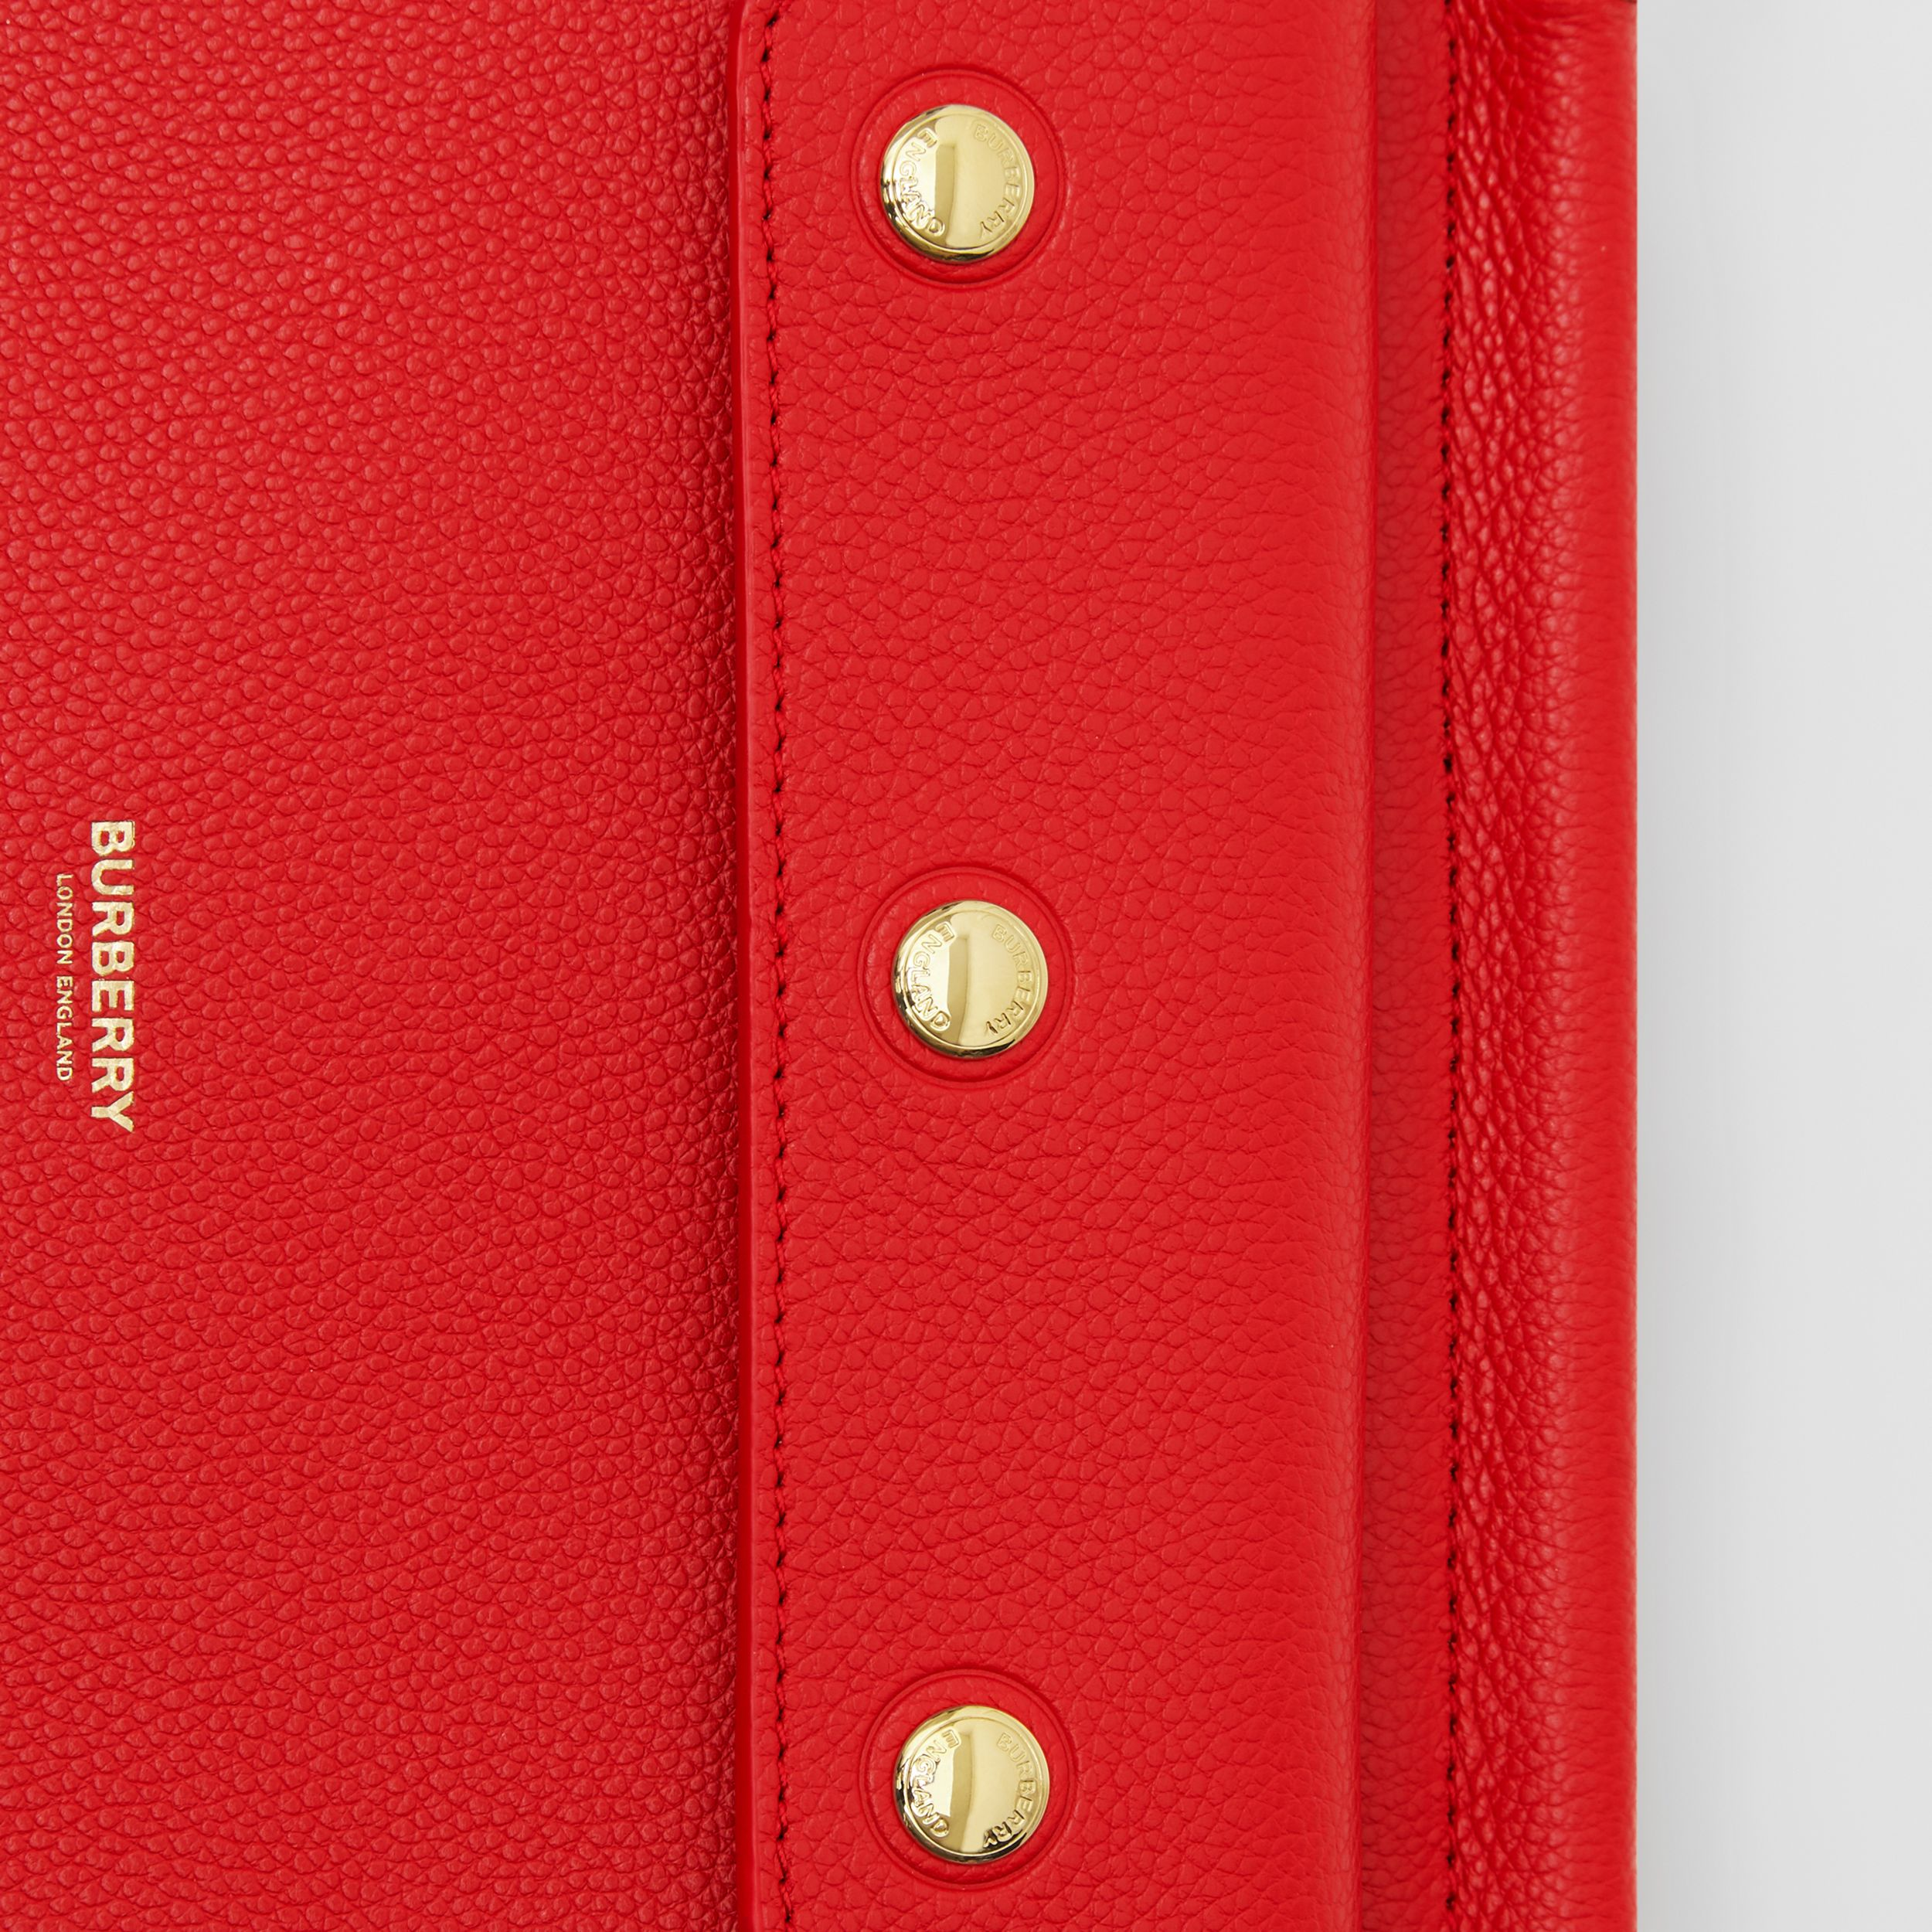 Mini Leather Title Bag with Pocket Detail in Bright Military Red - Women | Burberry - 2